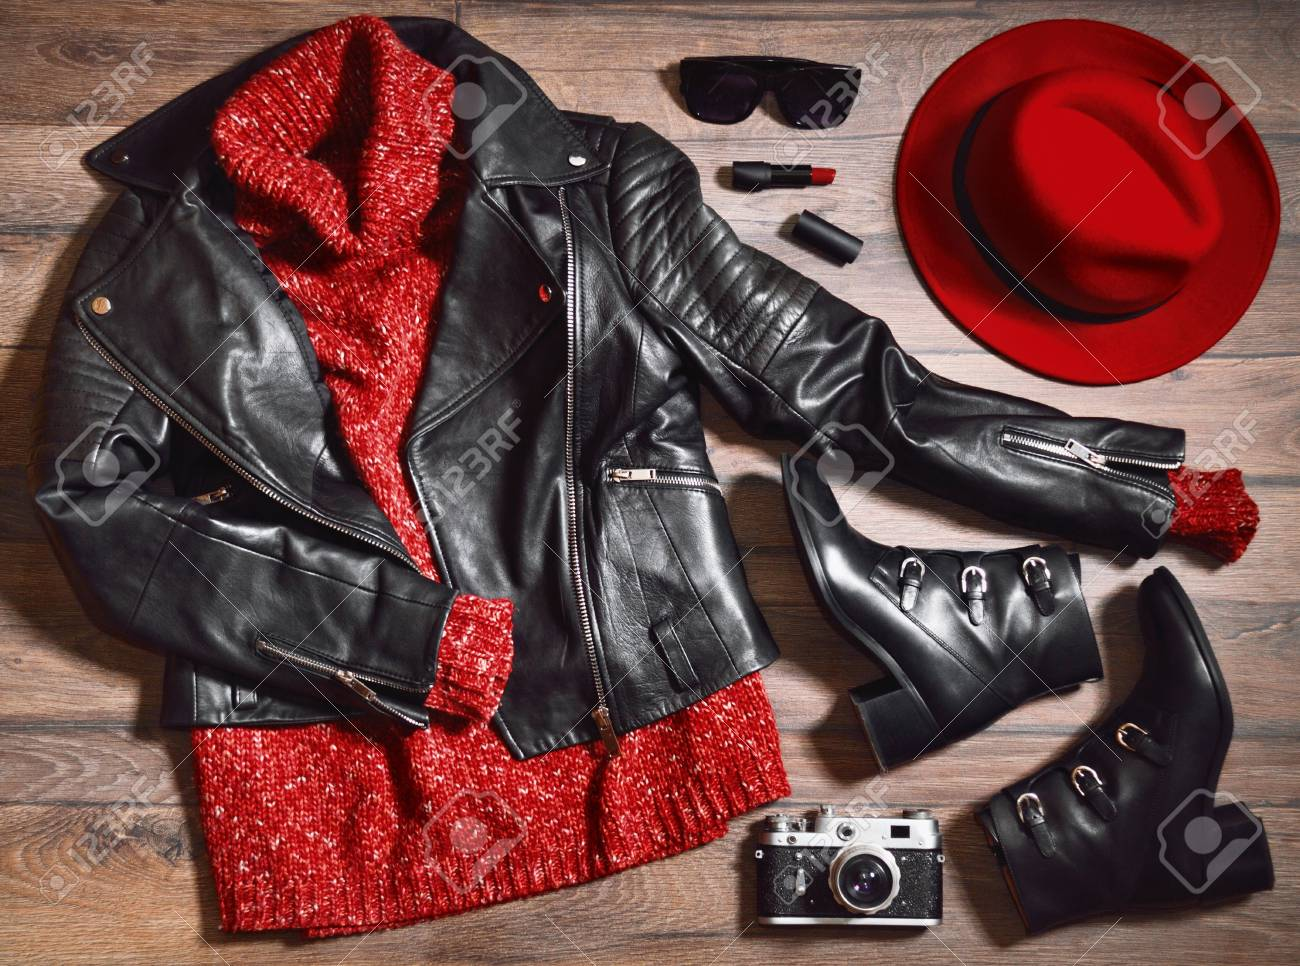 Stylish Clothes Set Of Stylish Clothes Woman Trendy Fashion Clothes Collage On